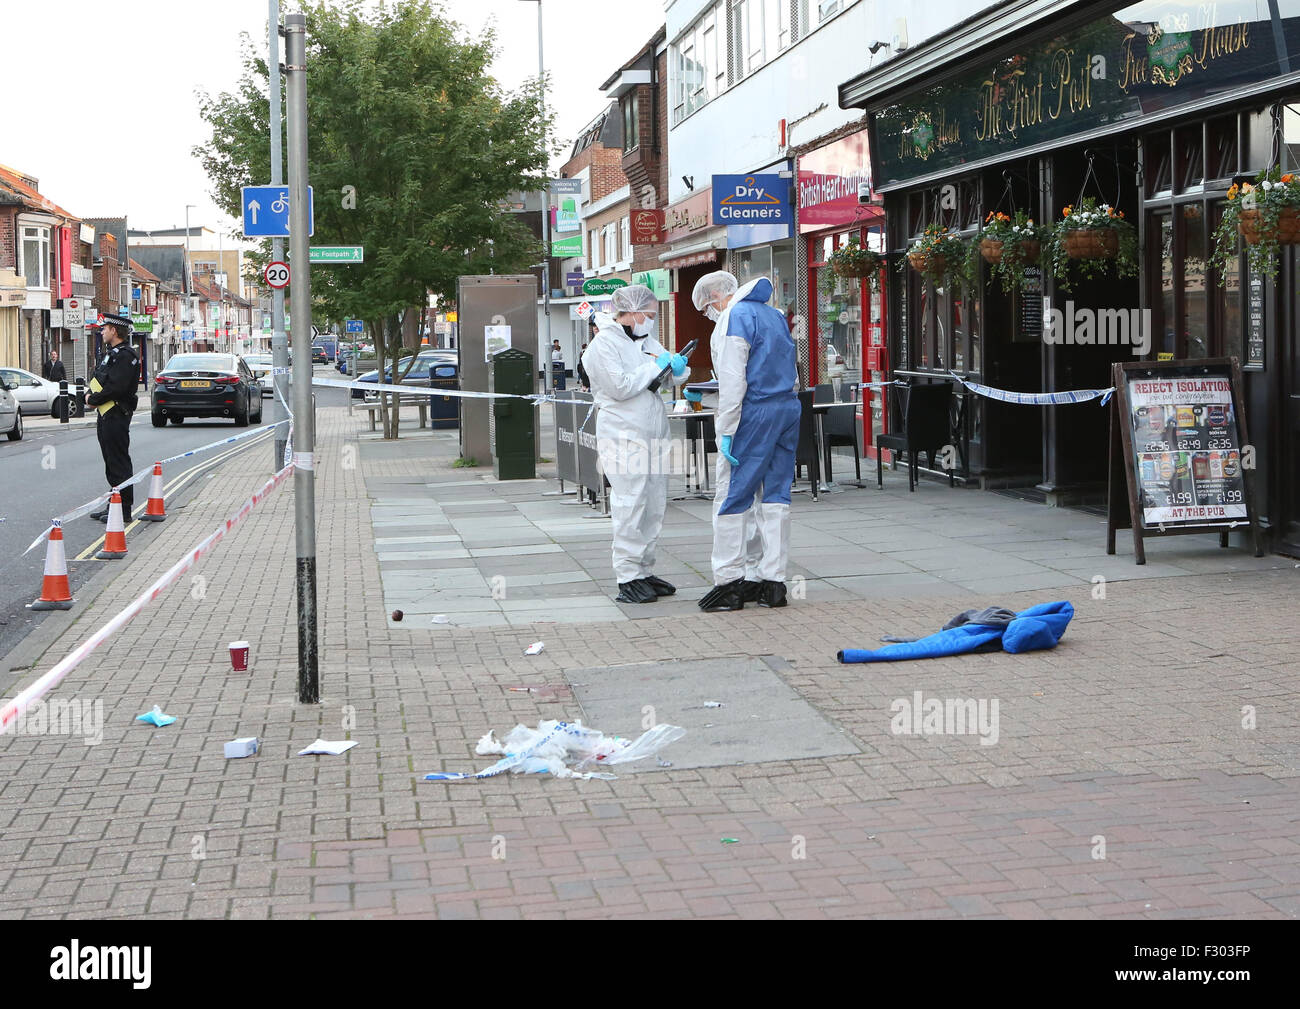 Cosham, Hampshire, Saturday 26th September 2015 GV of a crime scene in the High Street a man was been attacked. Stock Photo